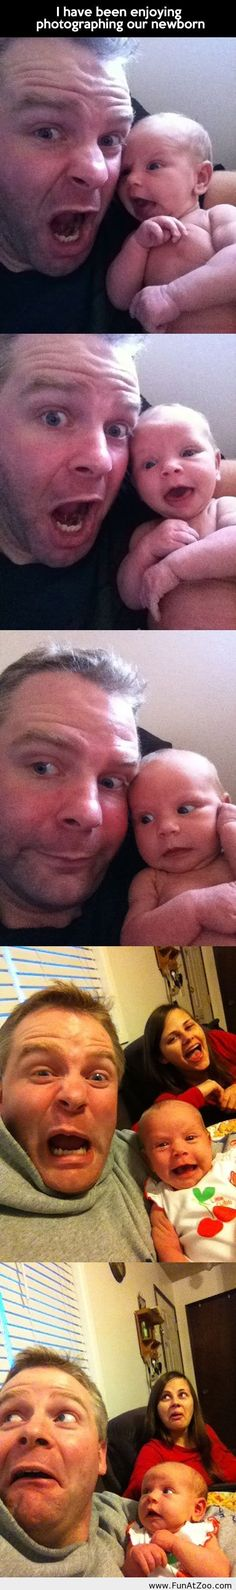 Cute and funny newborn pictures - Funny Picture